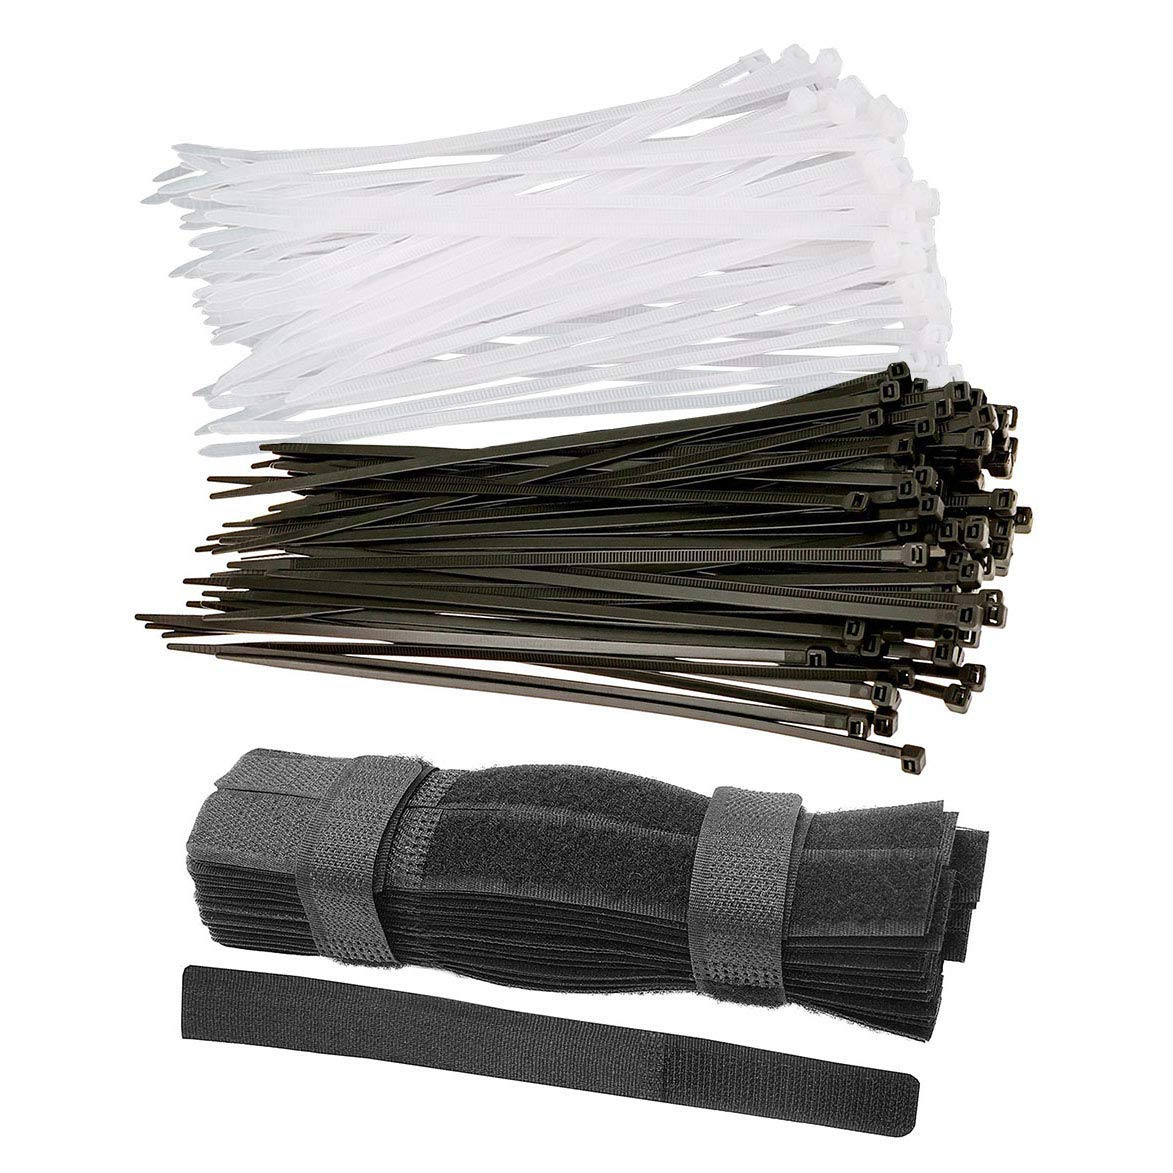 250PCS Cable Zip Ties, (6'' long 0.19'' wide) Heavy Duty Nylon Cable Zip Ties, Nylon Cable Self-locking Zip Ties, 7 In Black Reusable Fastening Cable Cord Tie Wire Organizer